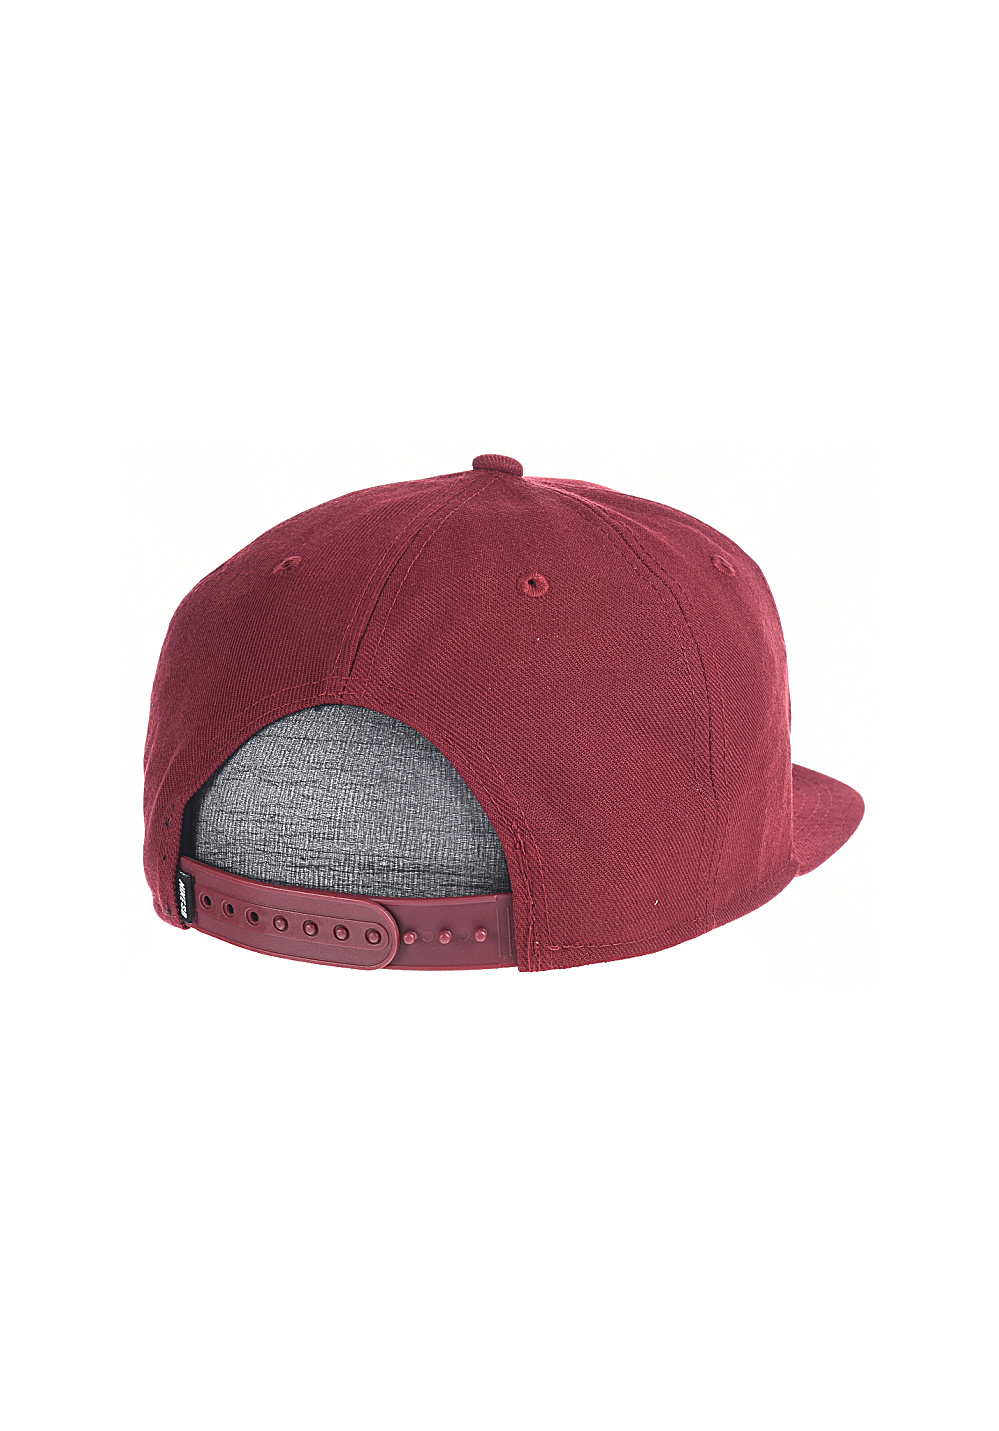 NIKE SB Icon Pro - Cap - Red - Planet Sports 4978095e1323